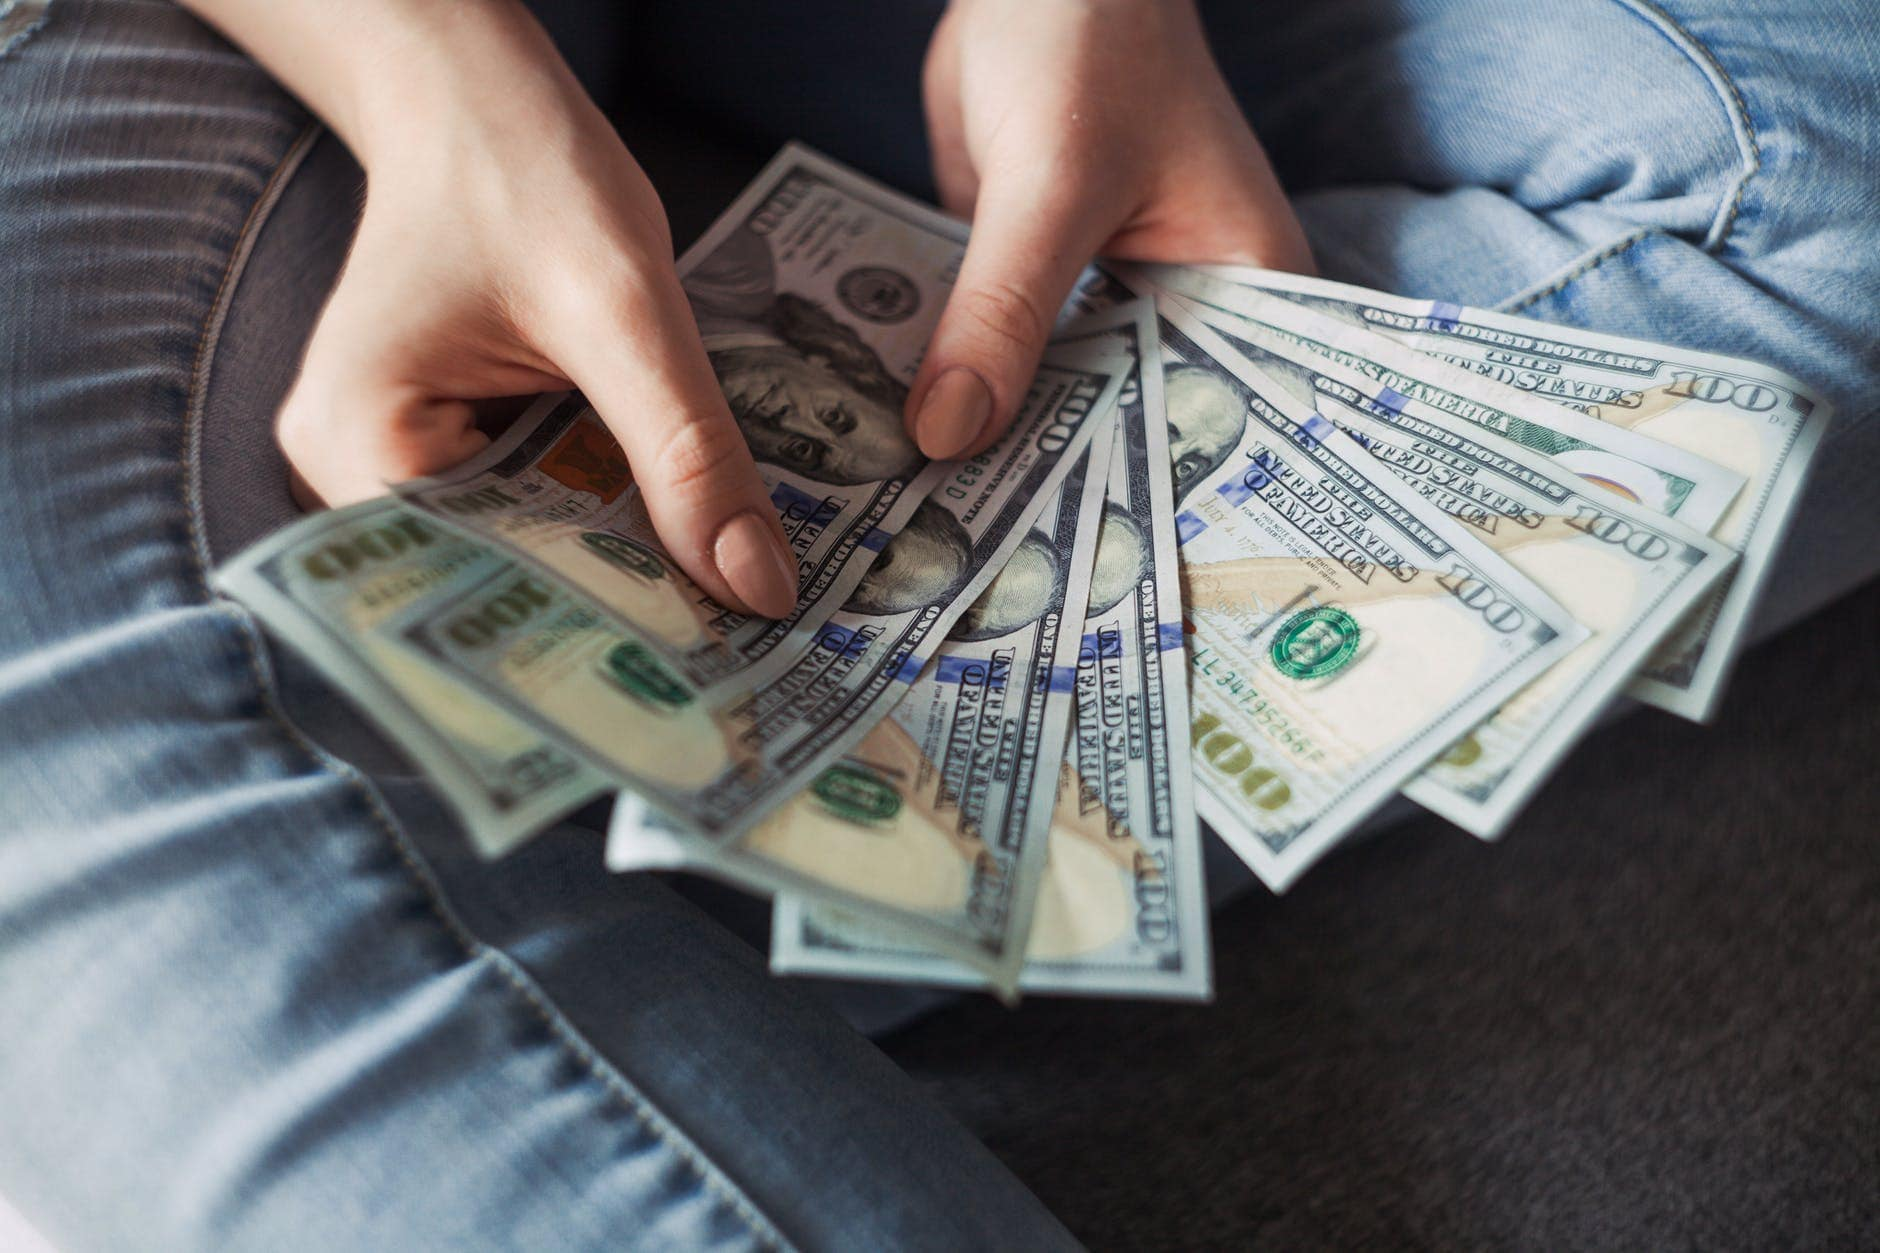 Use cash for everyday expenses